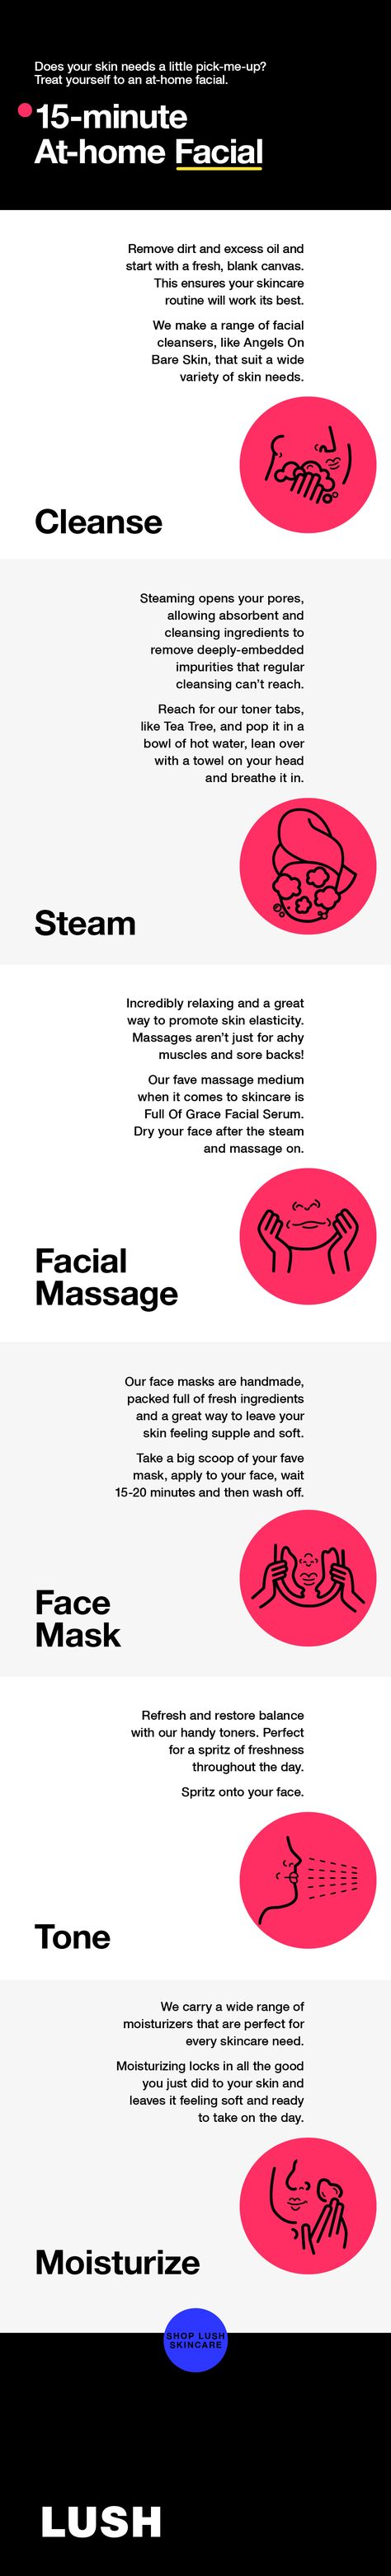 Does your skin need a little pick-me-up? Just in need  of a little me-time? Look no further. We've got you covered with this quick (yet effective) at-home facial routine.  #athomefacial #selfcare #15minutefacial #lushcosmetics